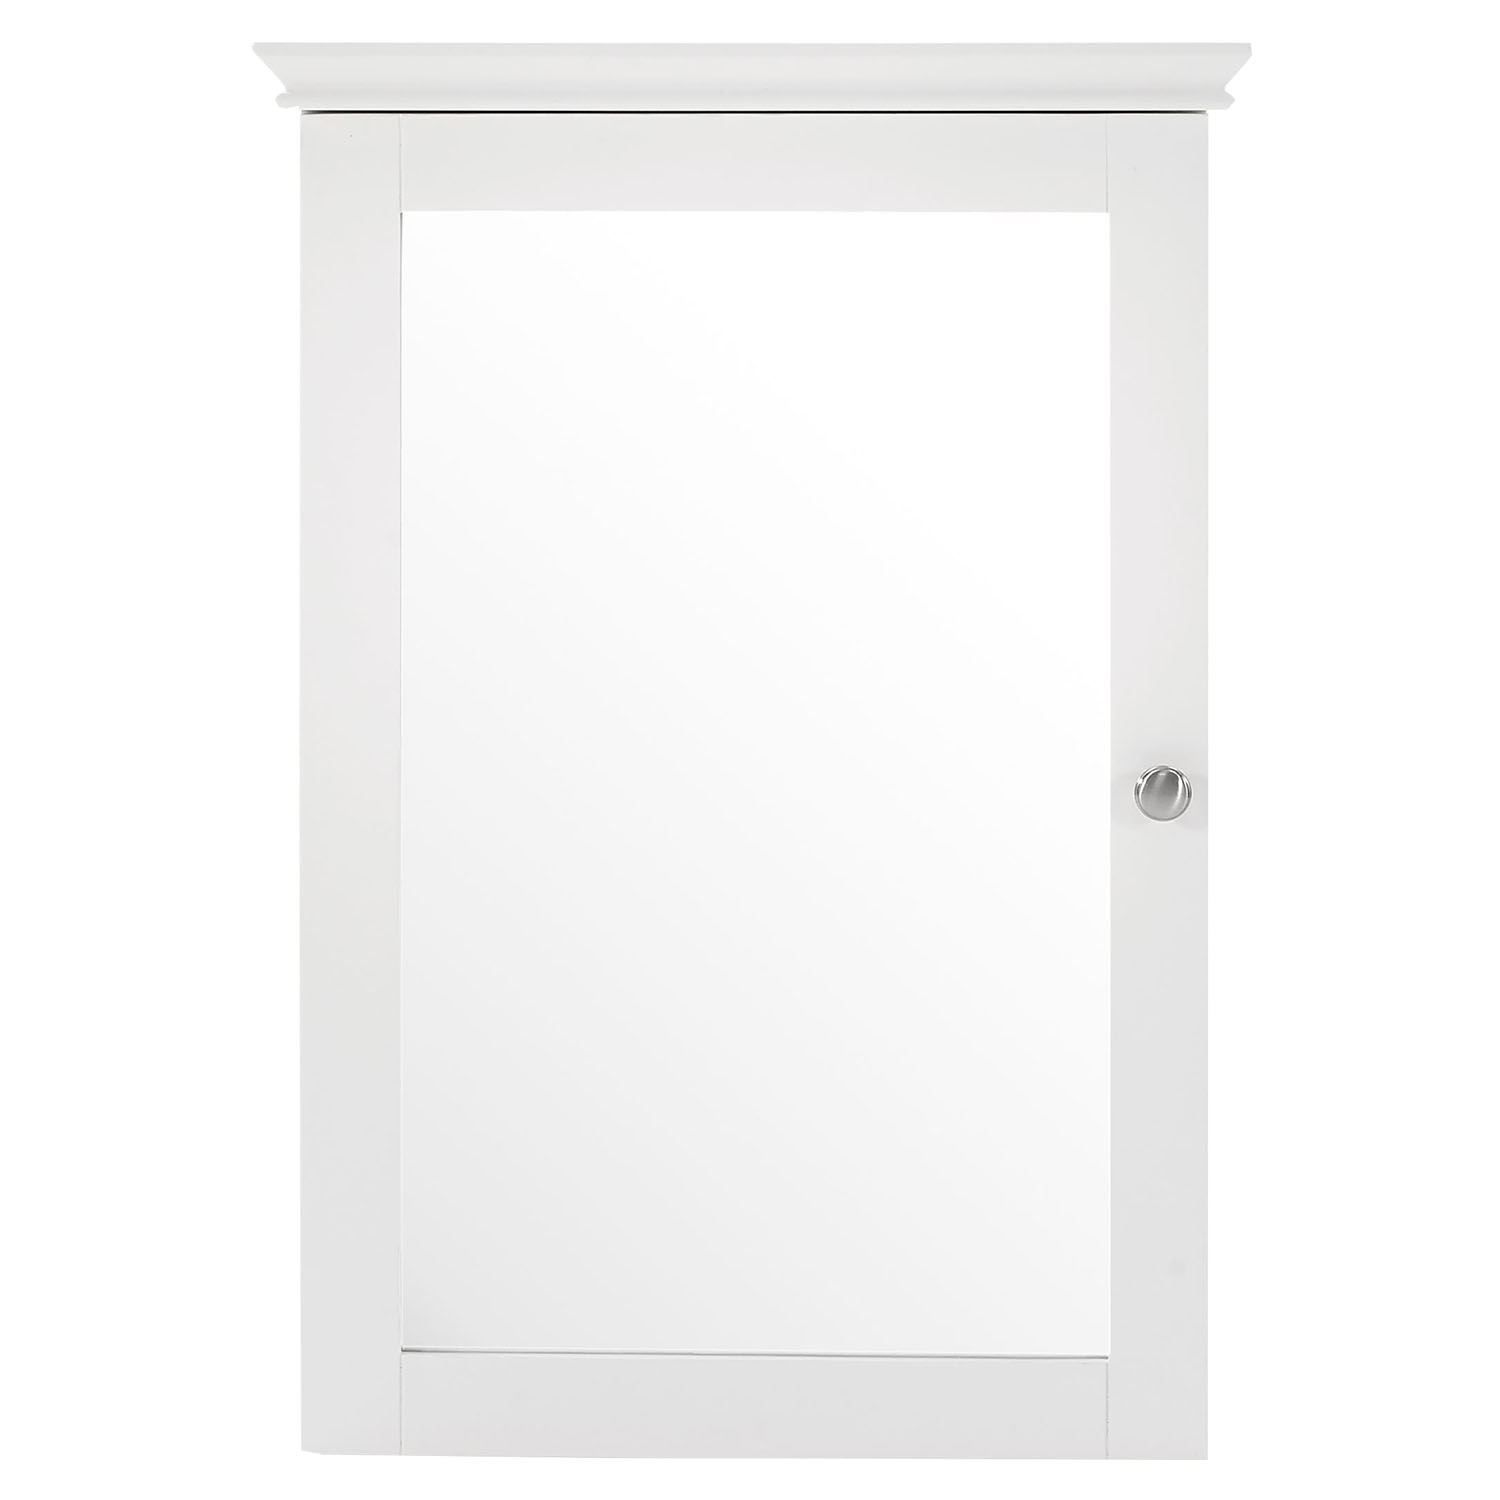 Lydia Mirrored Wall Cabinet - White - CROS-CF7005-WH